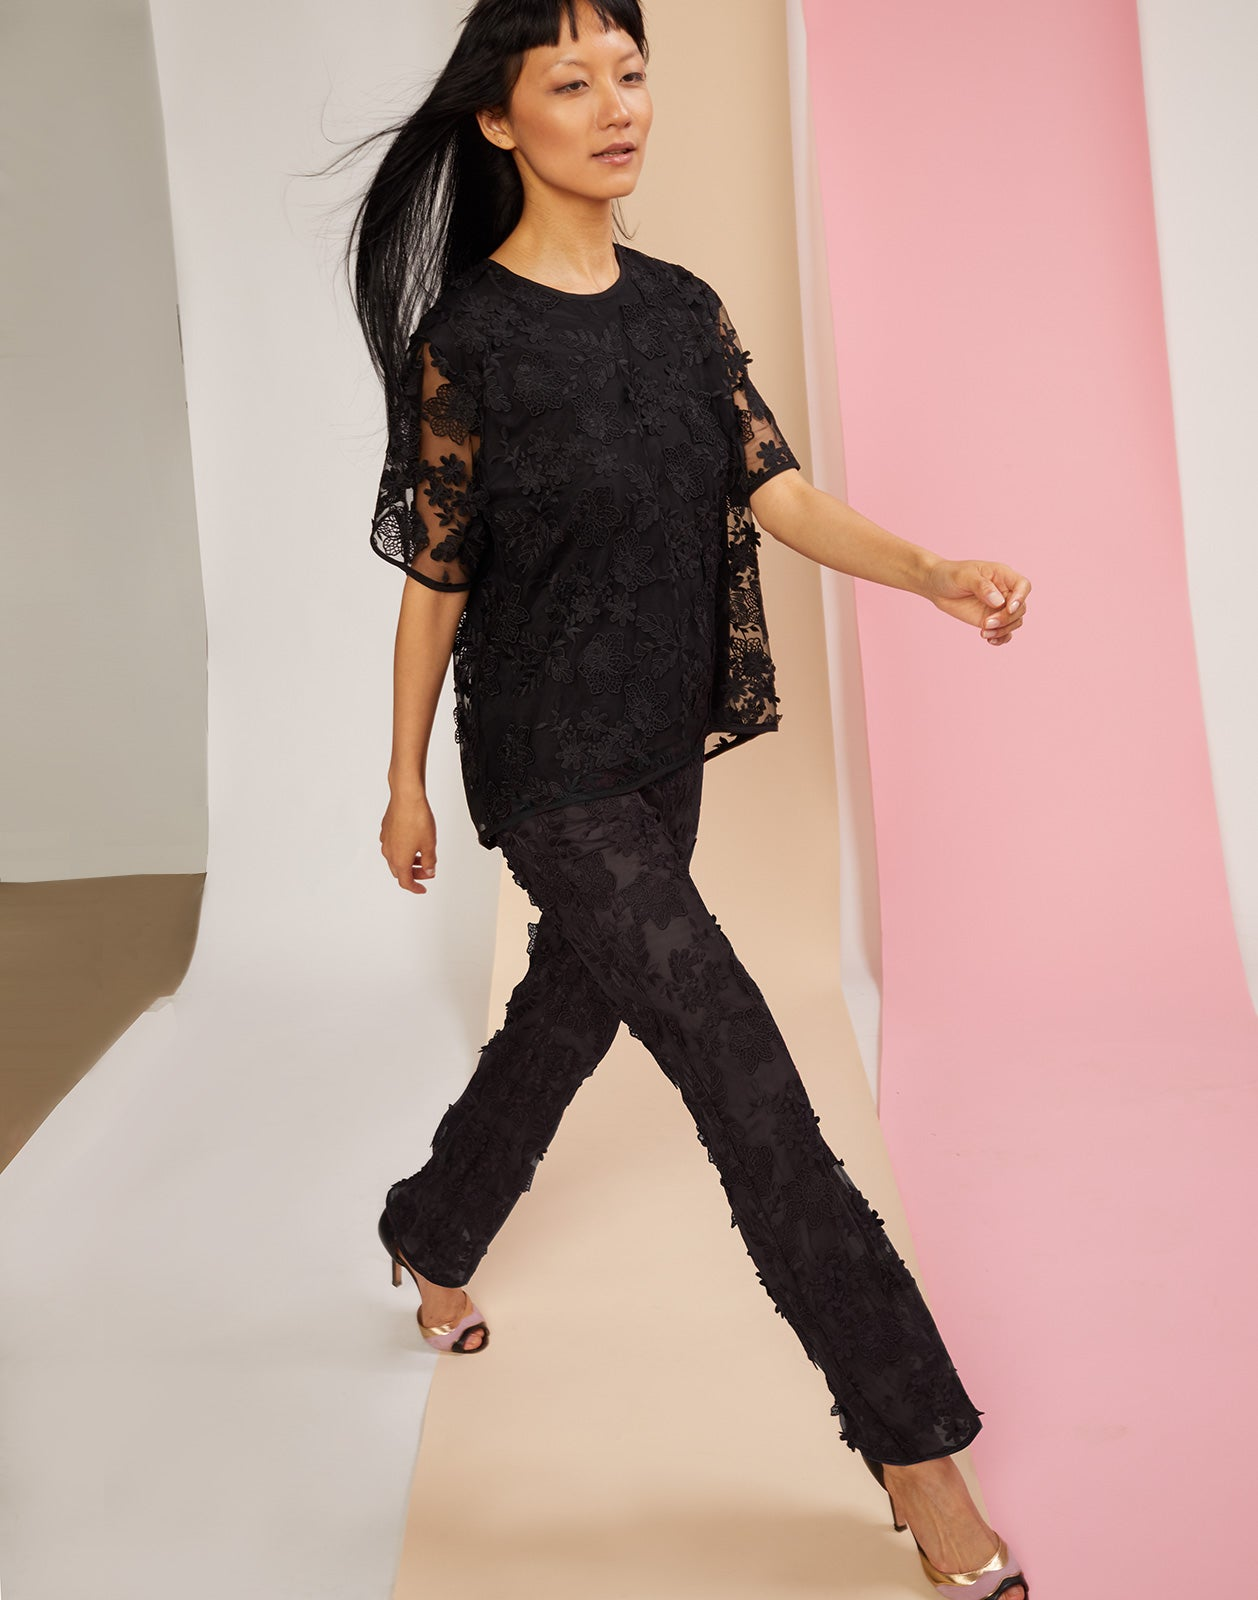 Model walking in the black floral crossfade lace t-shirt and pants.